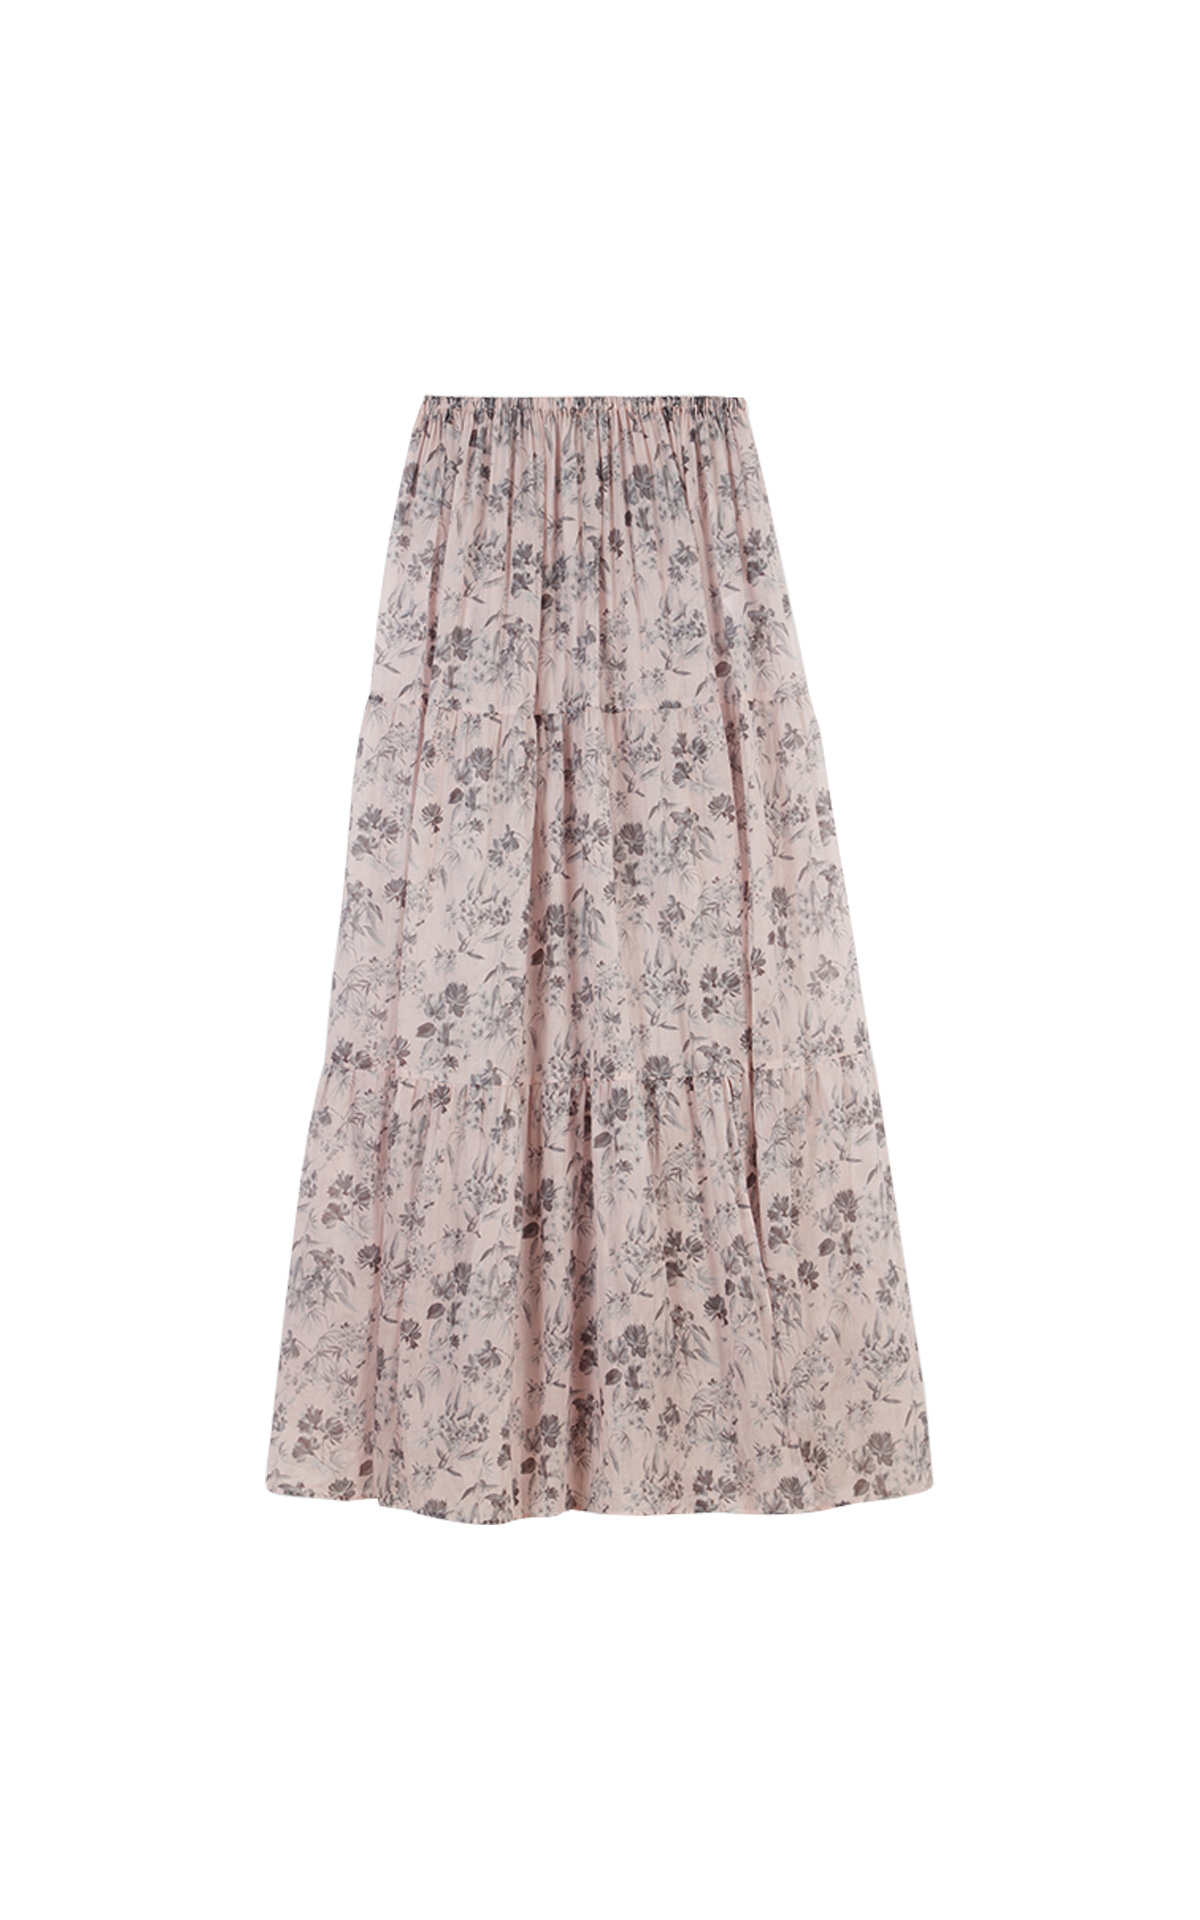 Maje Long floral-print cotton voile skirt at The Bicester Village Shopping Collection